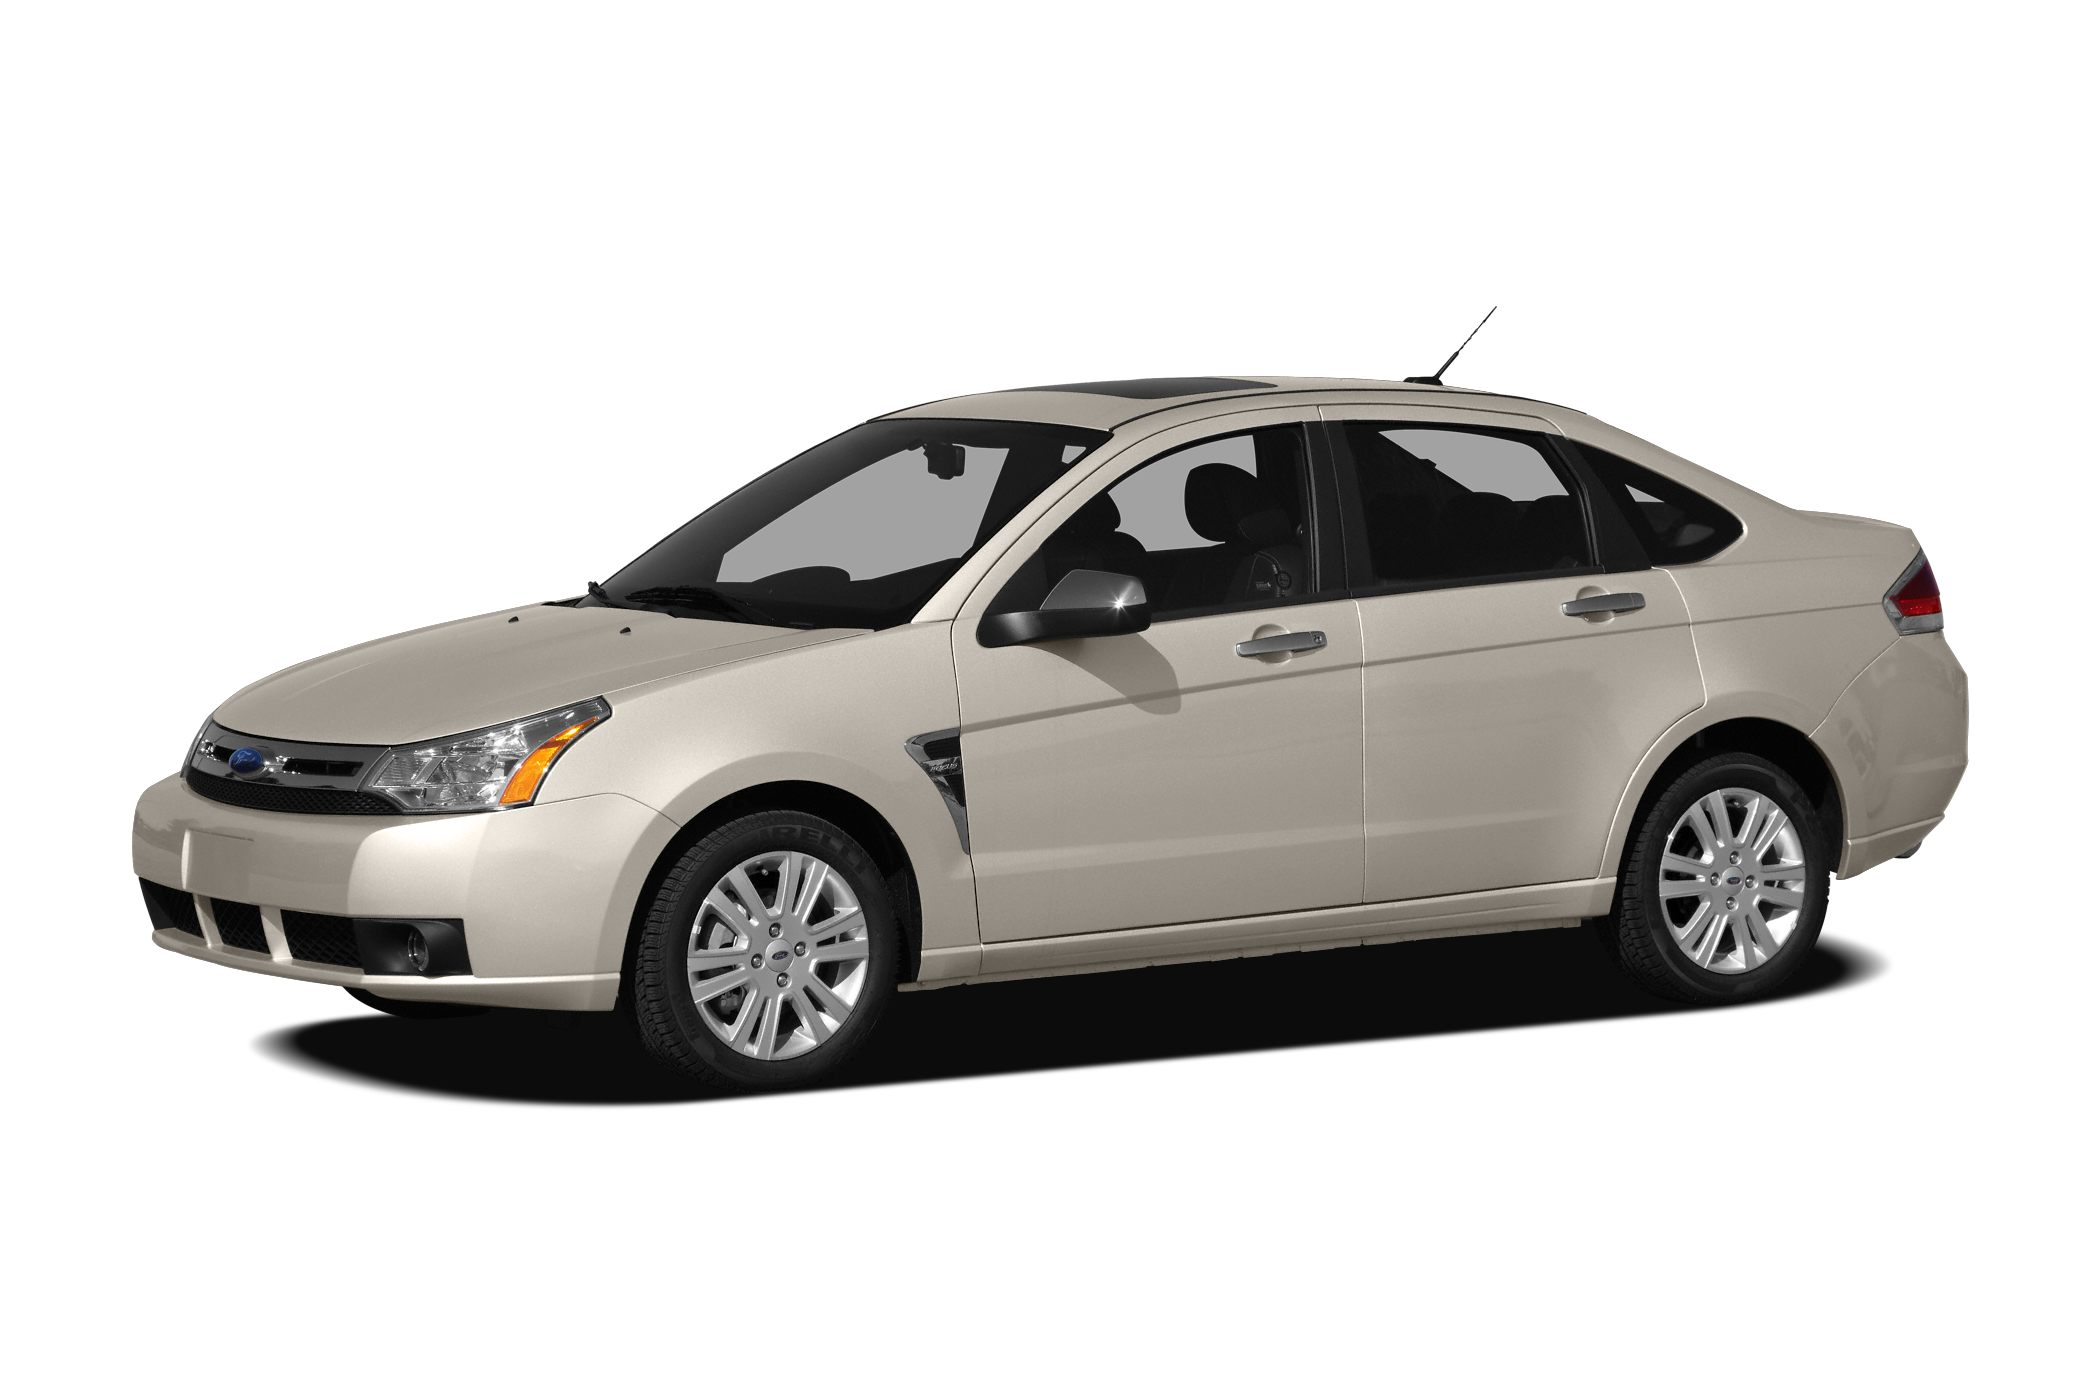 2010 Ford Focus SE Sedan for sale in Albert Lea for $9,999 with 54,401 miles